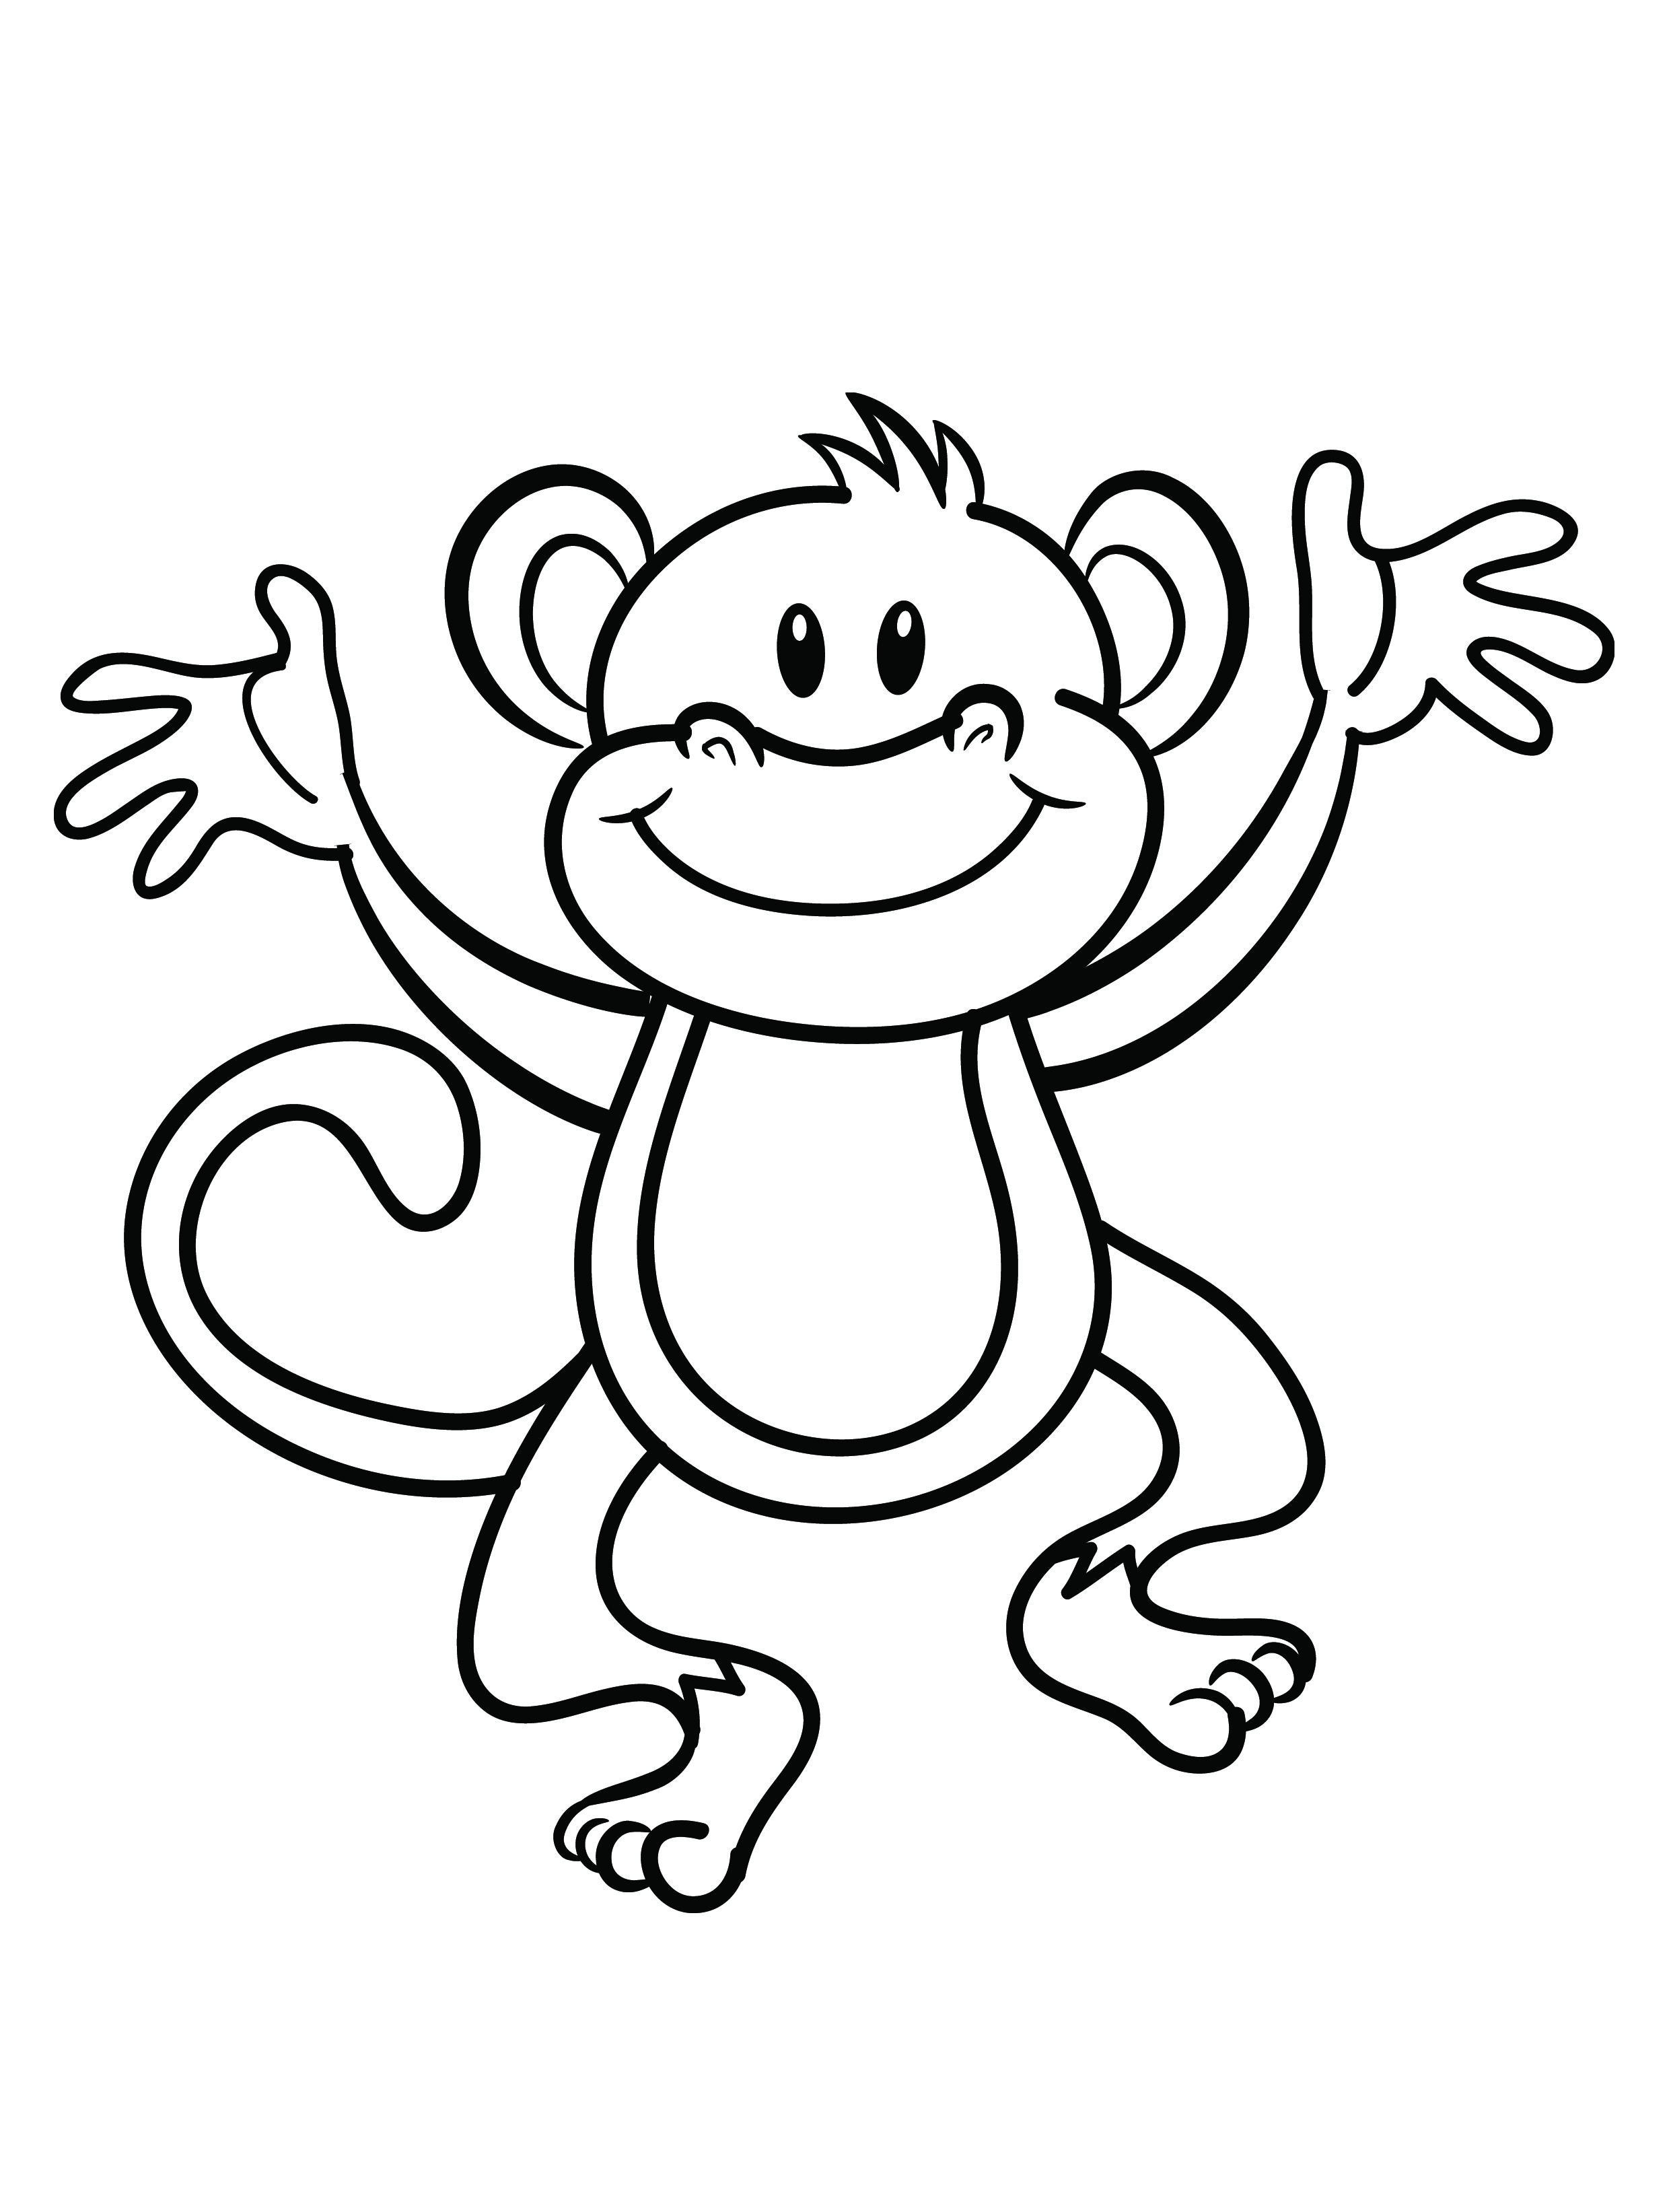 2480x3286 Monkey Coloring Pages For Preschoolers Colouring In Fancy Page